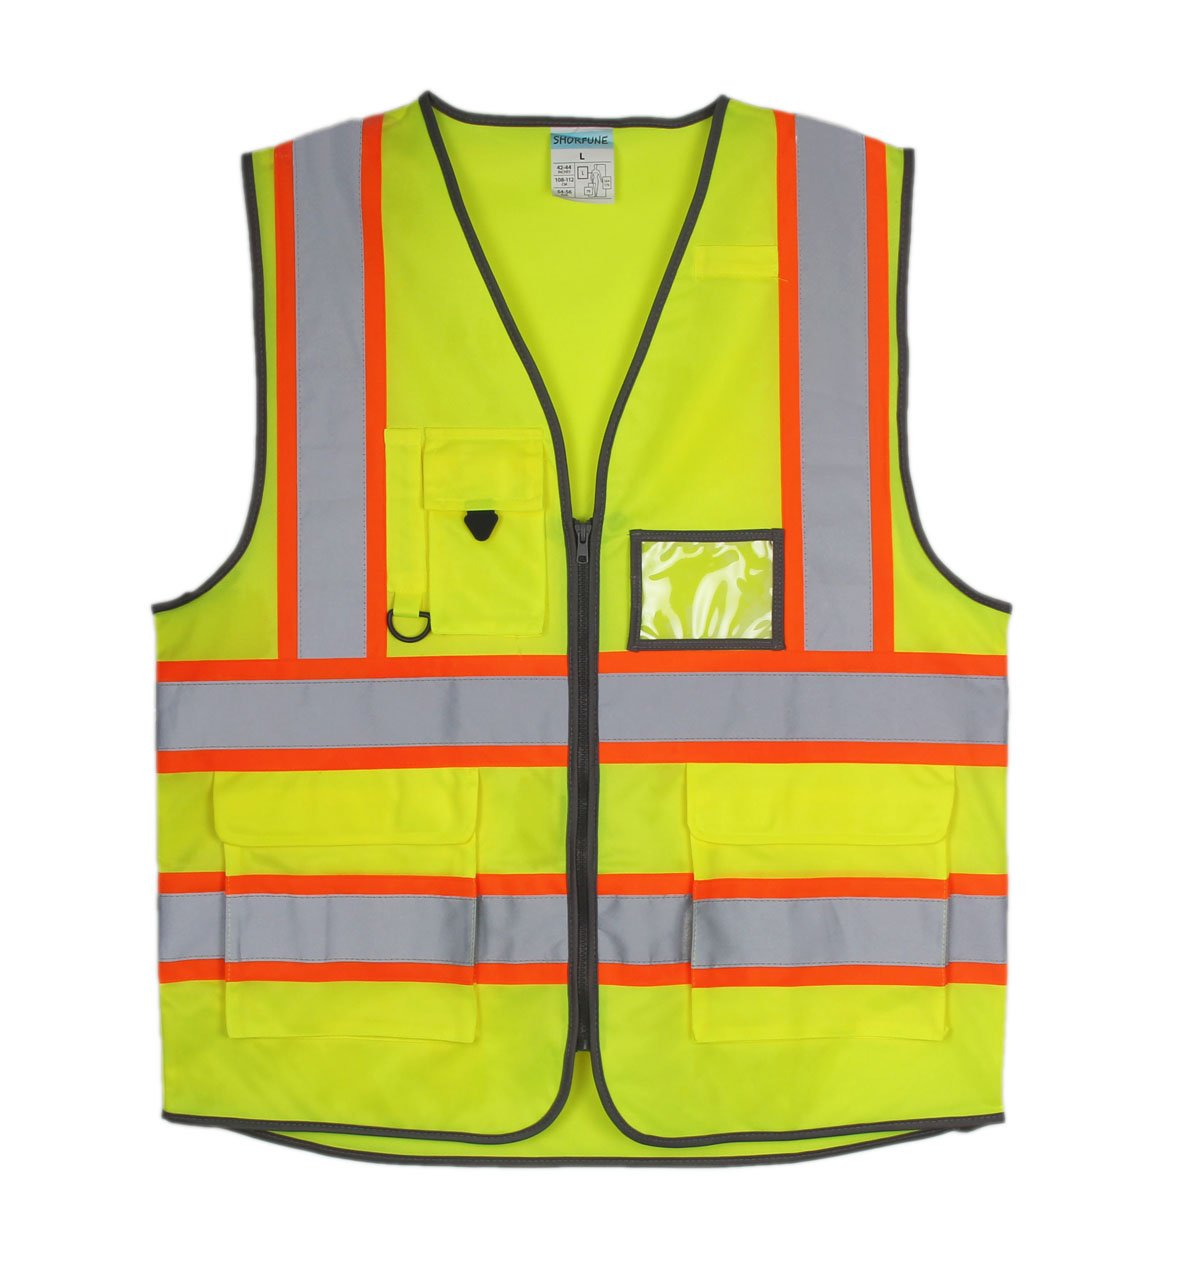 SHORFUNE 1119U High Visibility Reflective Safety Vest with Pockets and Zipper, Double Horizontal Reflective Strips, ANSI/ISEA Standard, Neon Yellow, L